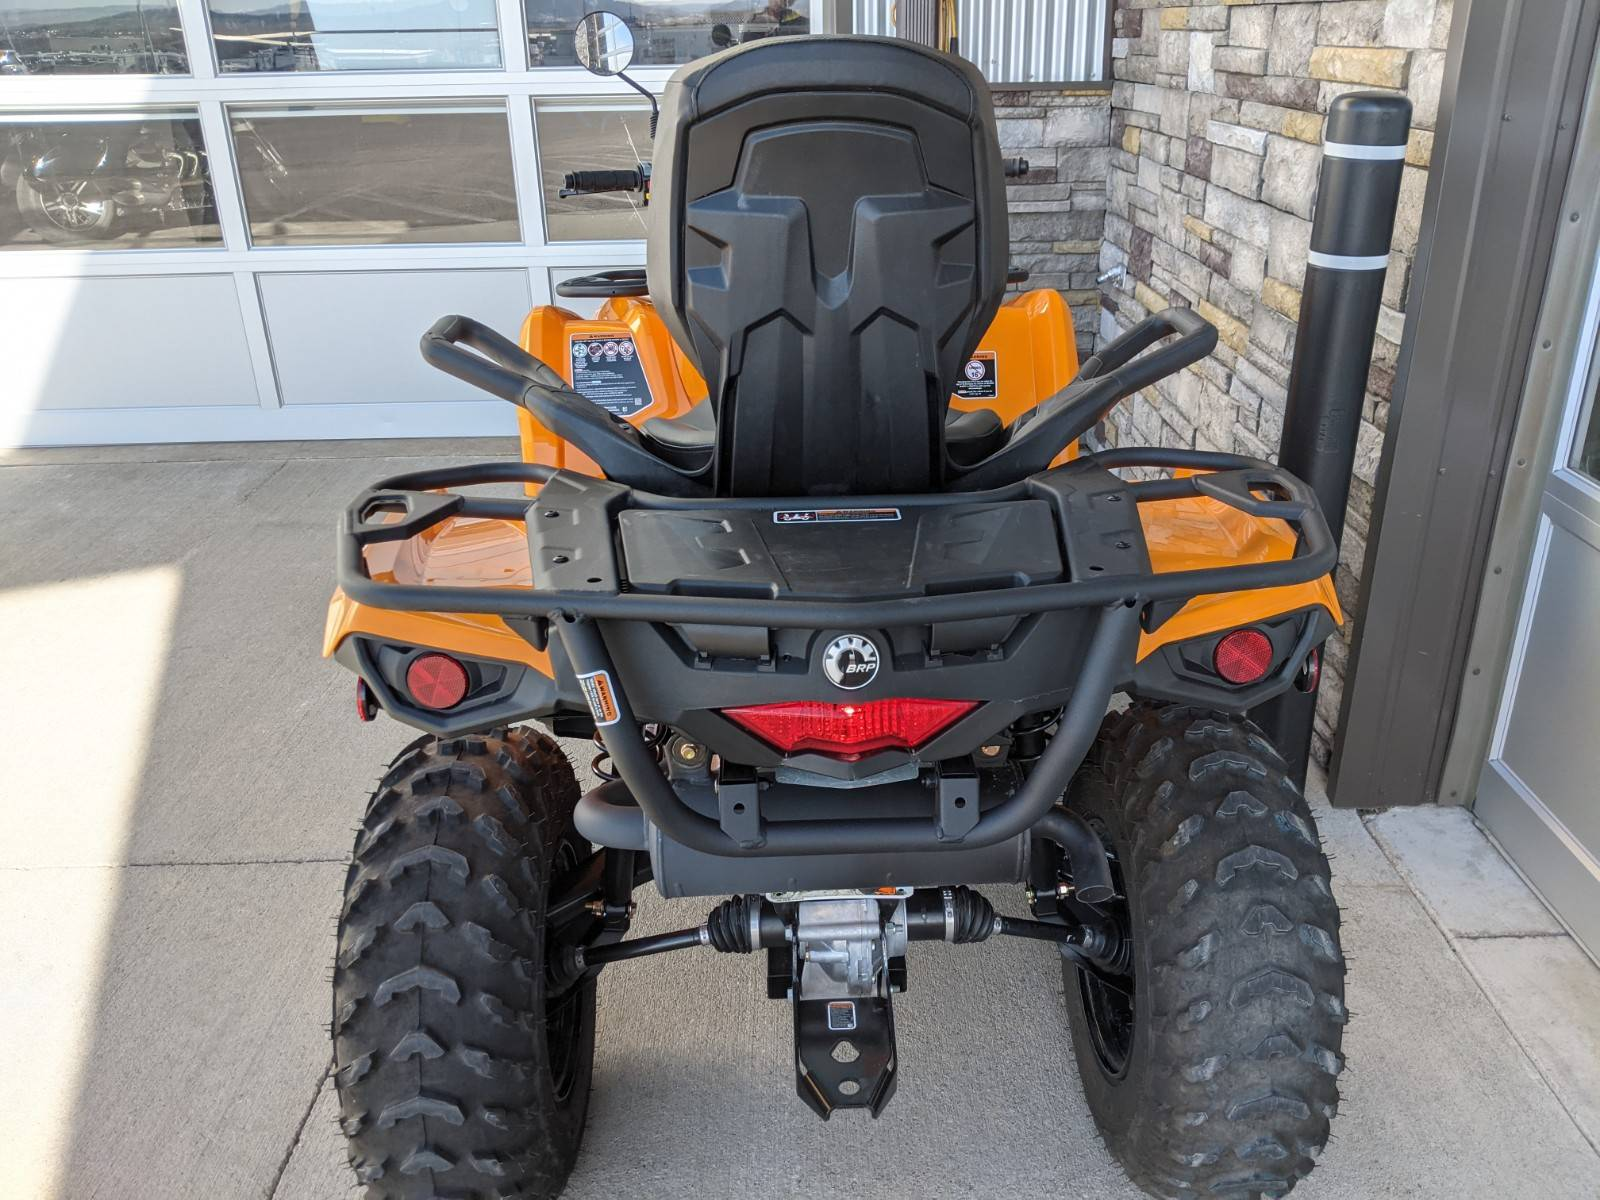 2020 Can-Am Outlander MAX DPS 570 in Rapid City, South Dakota - Photo 4